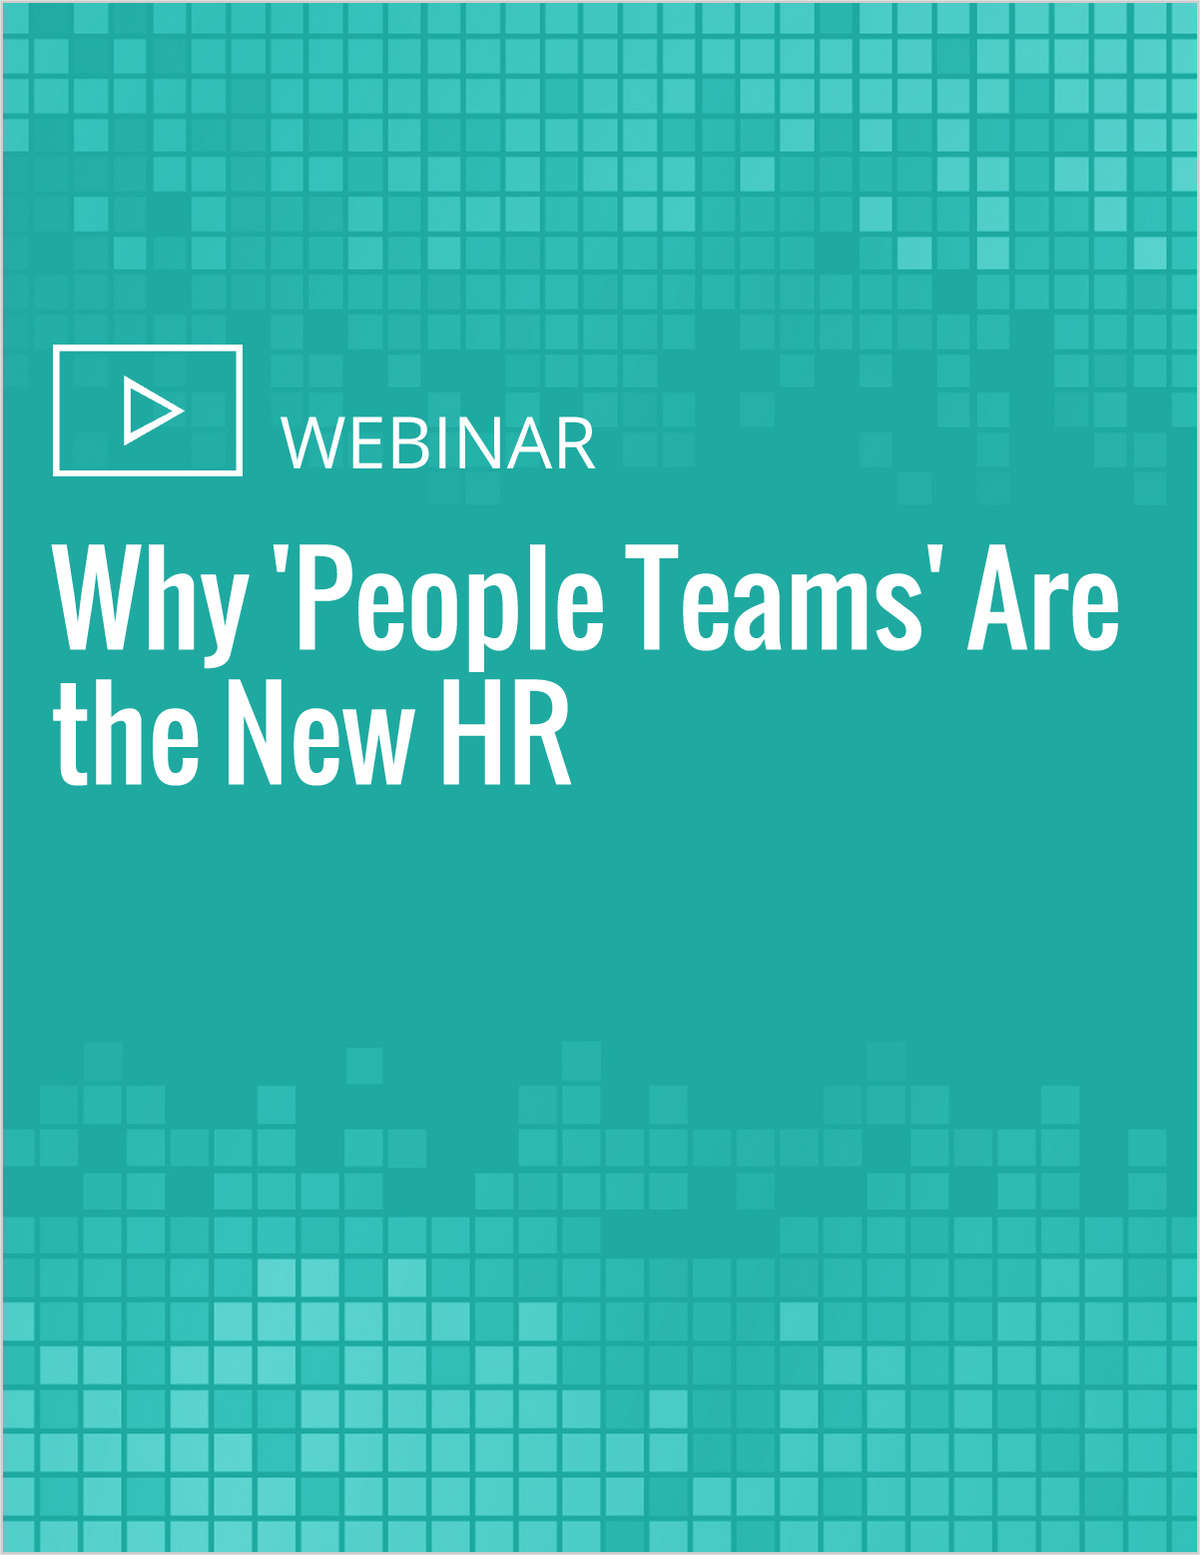 Learn Why 'People Teams' Are the New HR